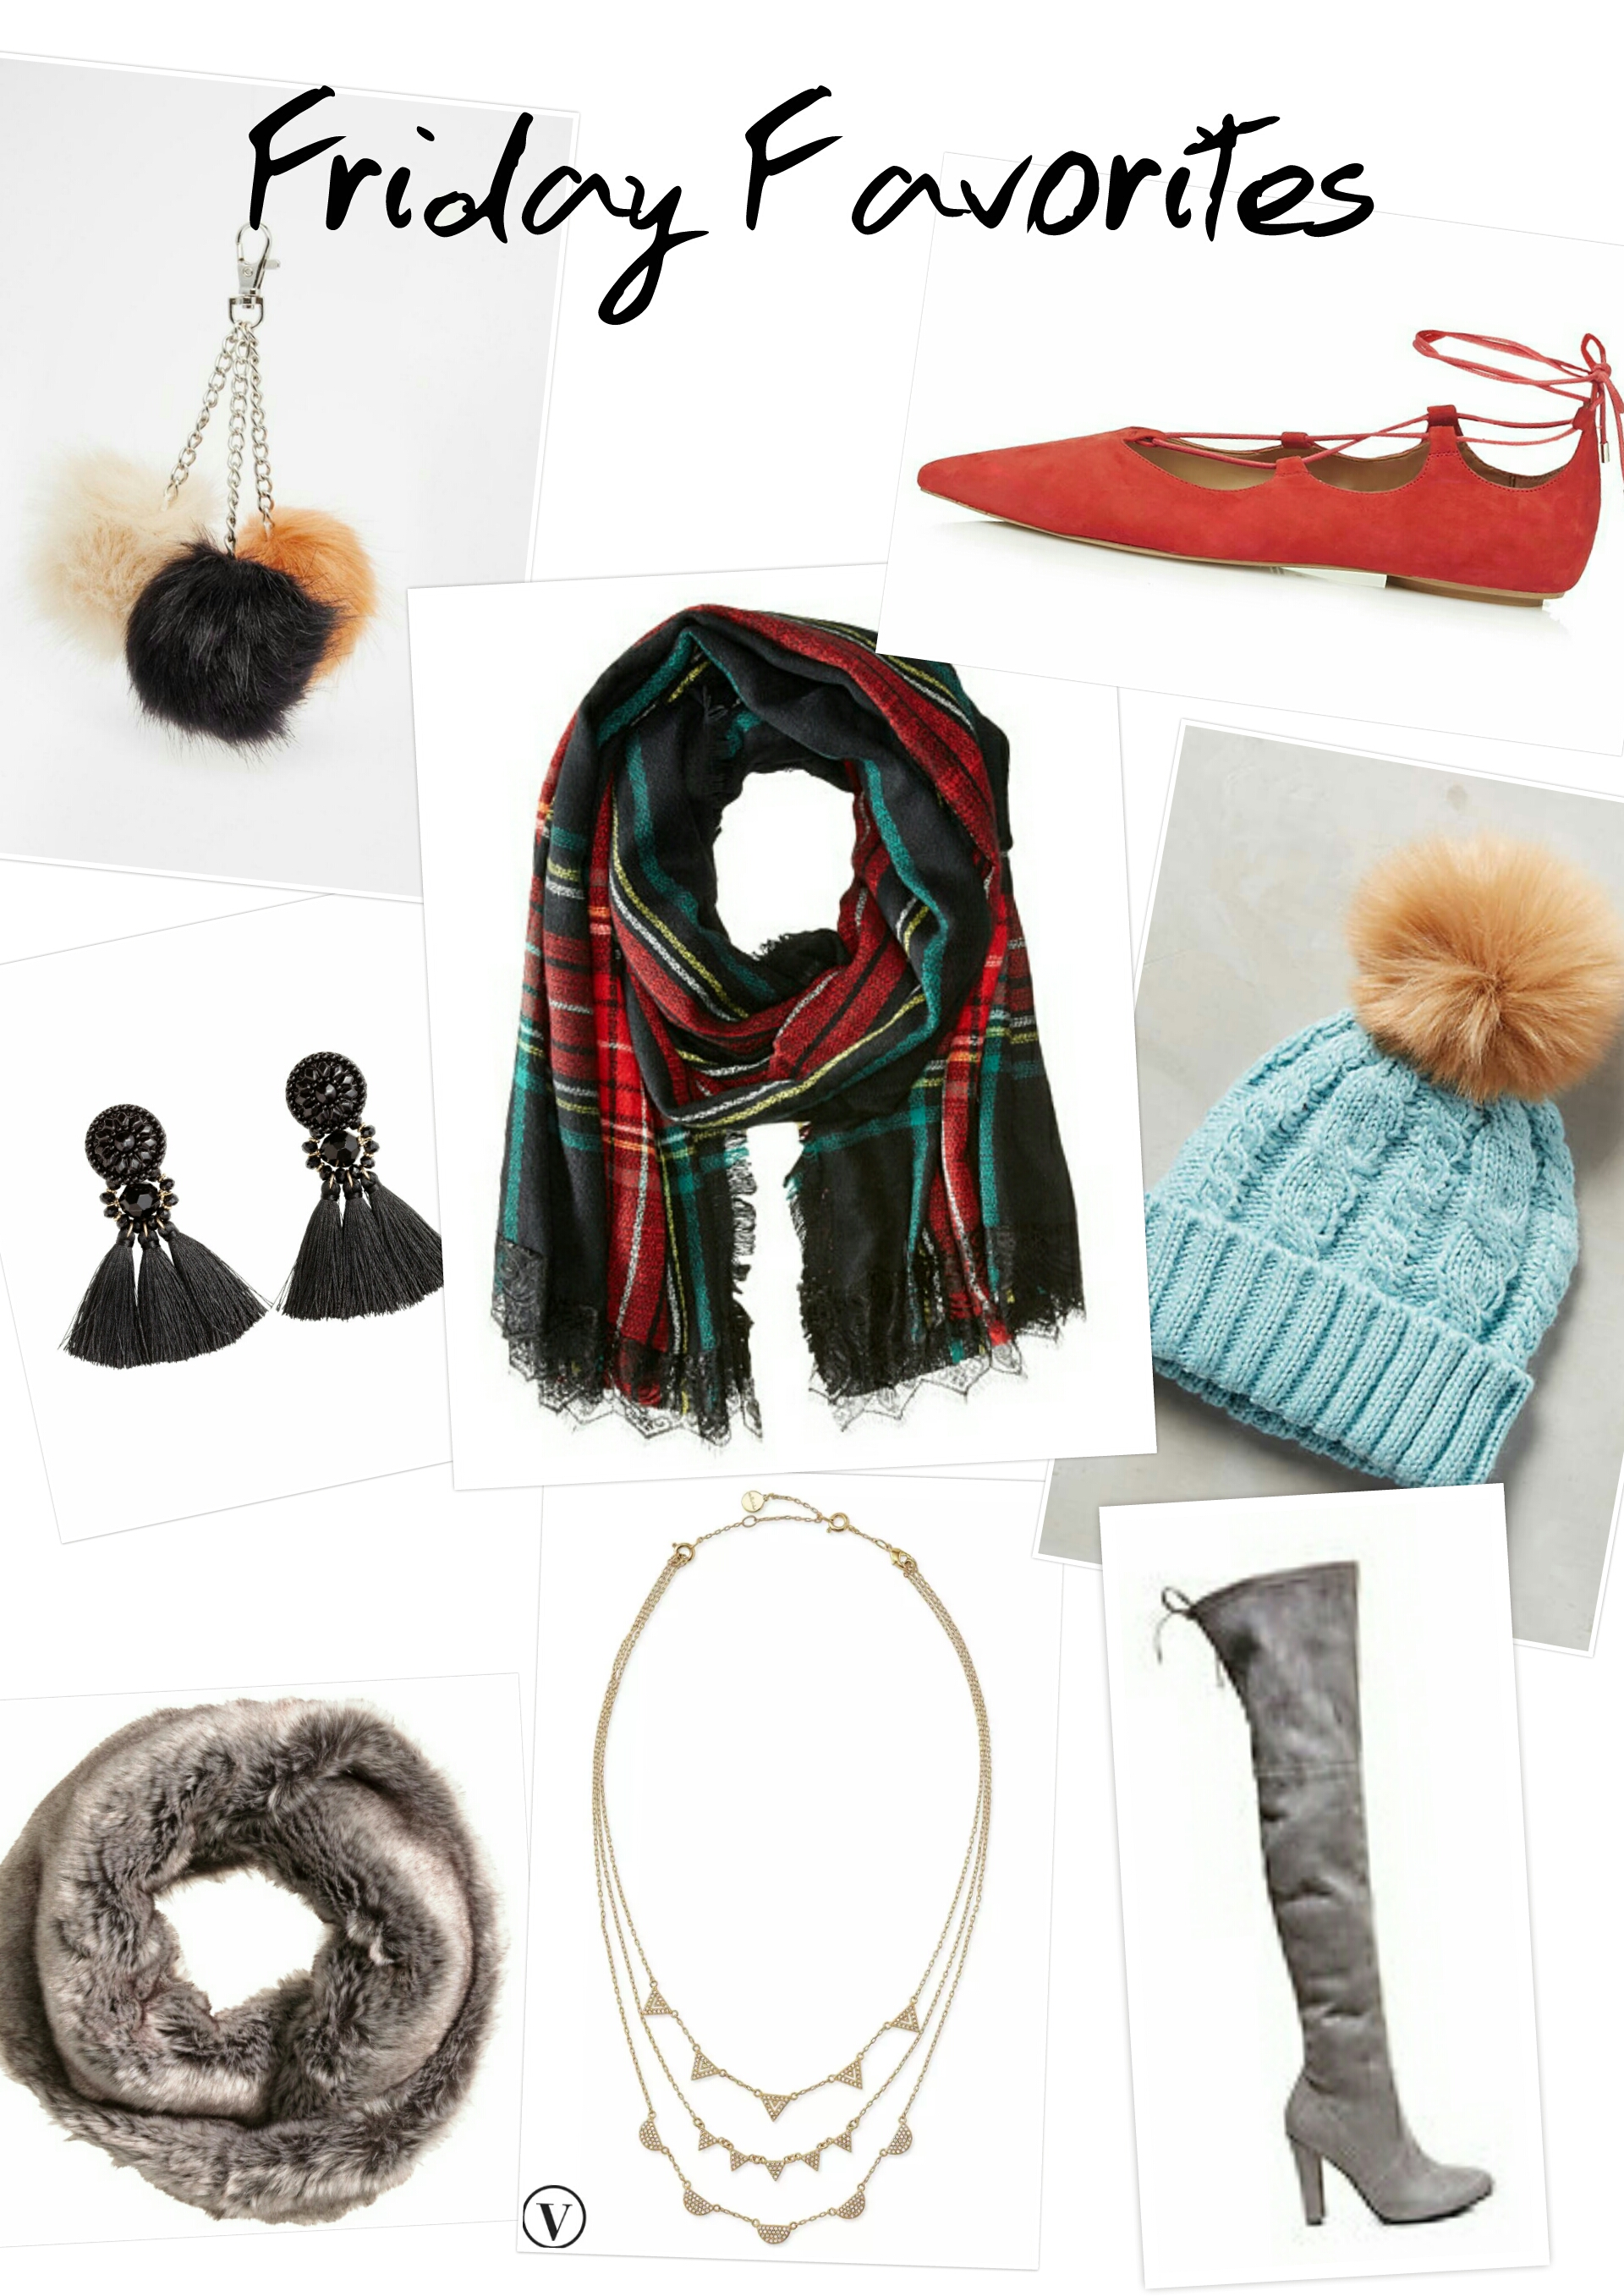 FRIDAY FAVORITES: WINTER ACCESSORIES